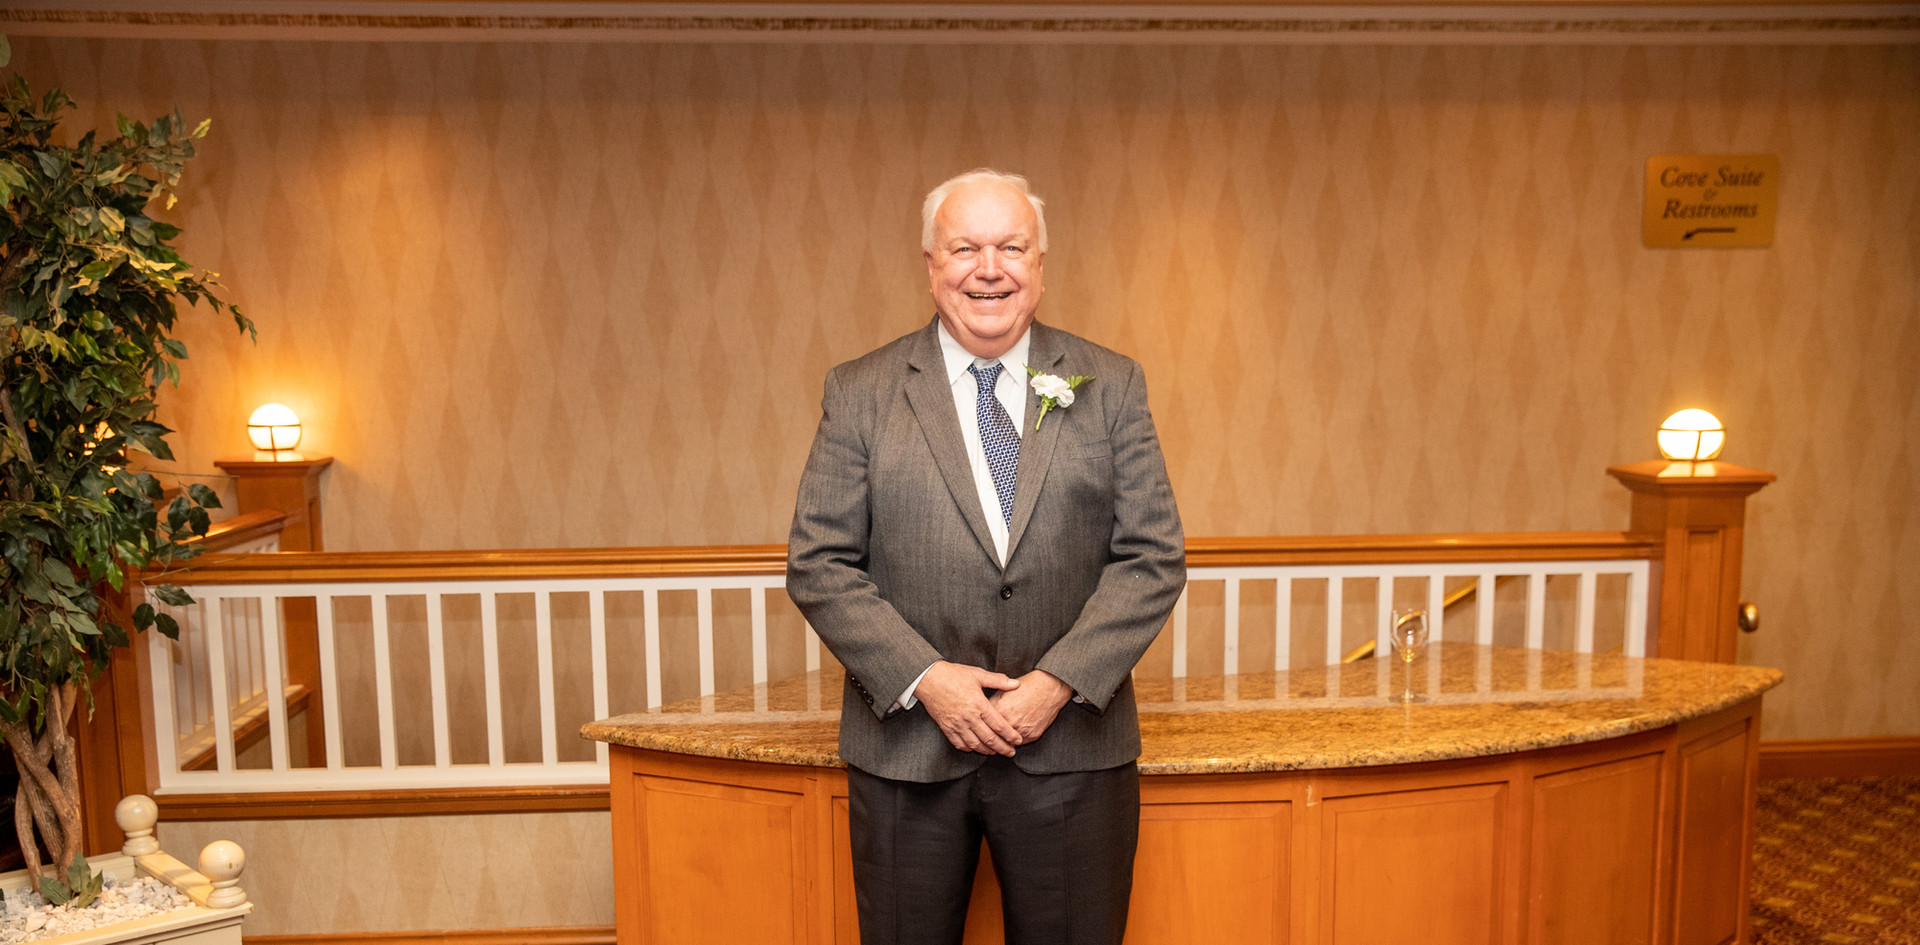 2019 Honoree Bob Kramer.  (photo by Josh Molaver)